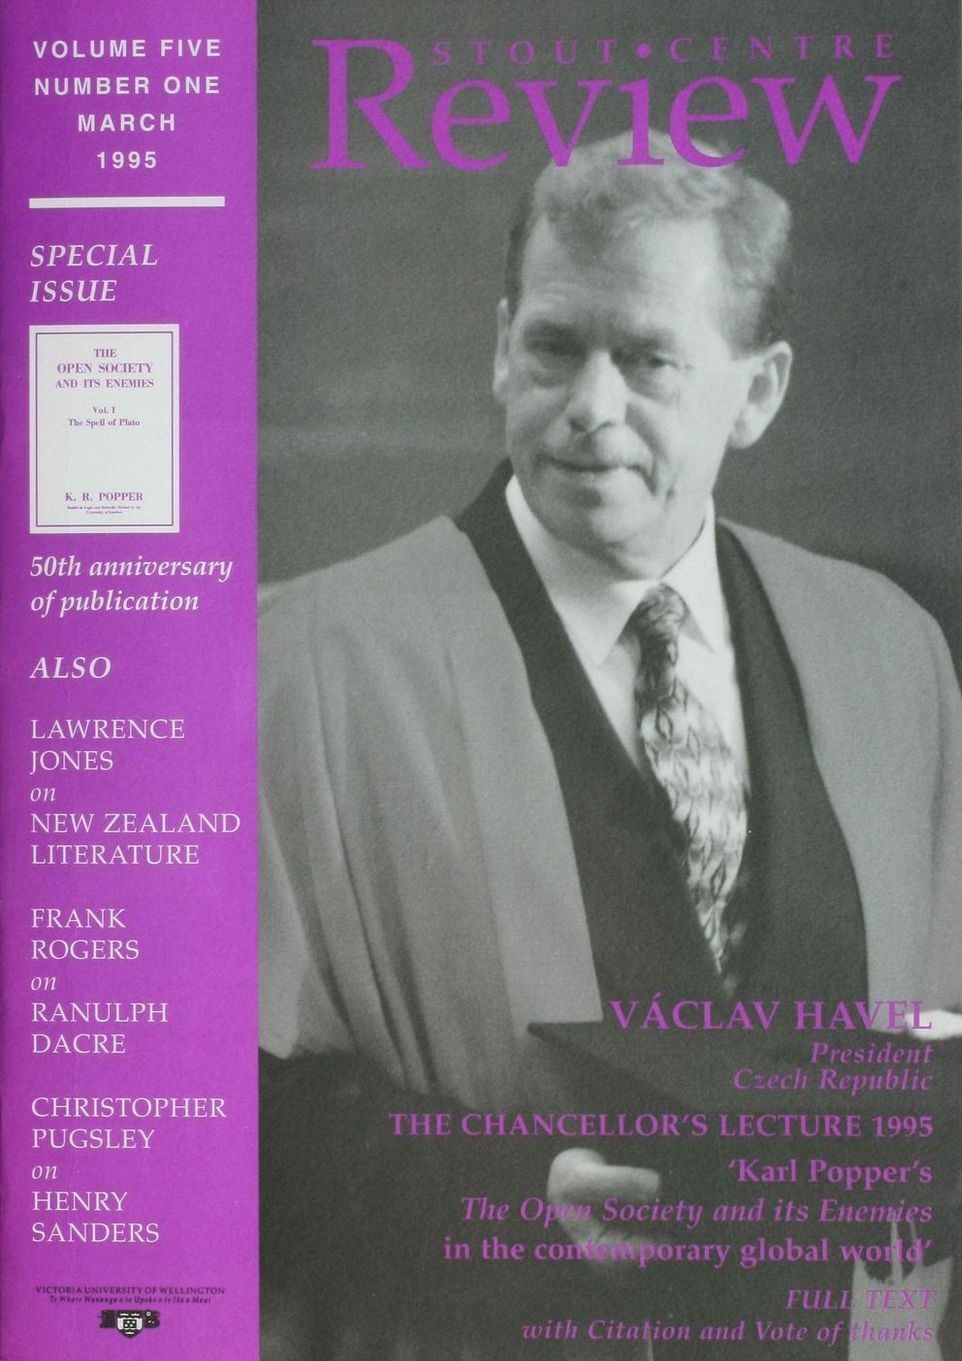 Cover of Stout Centre Review, 1995, V. 5, N. 1.